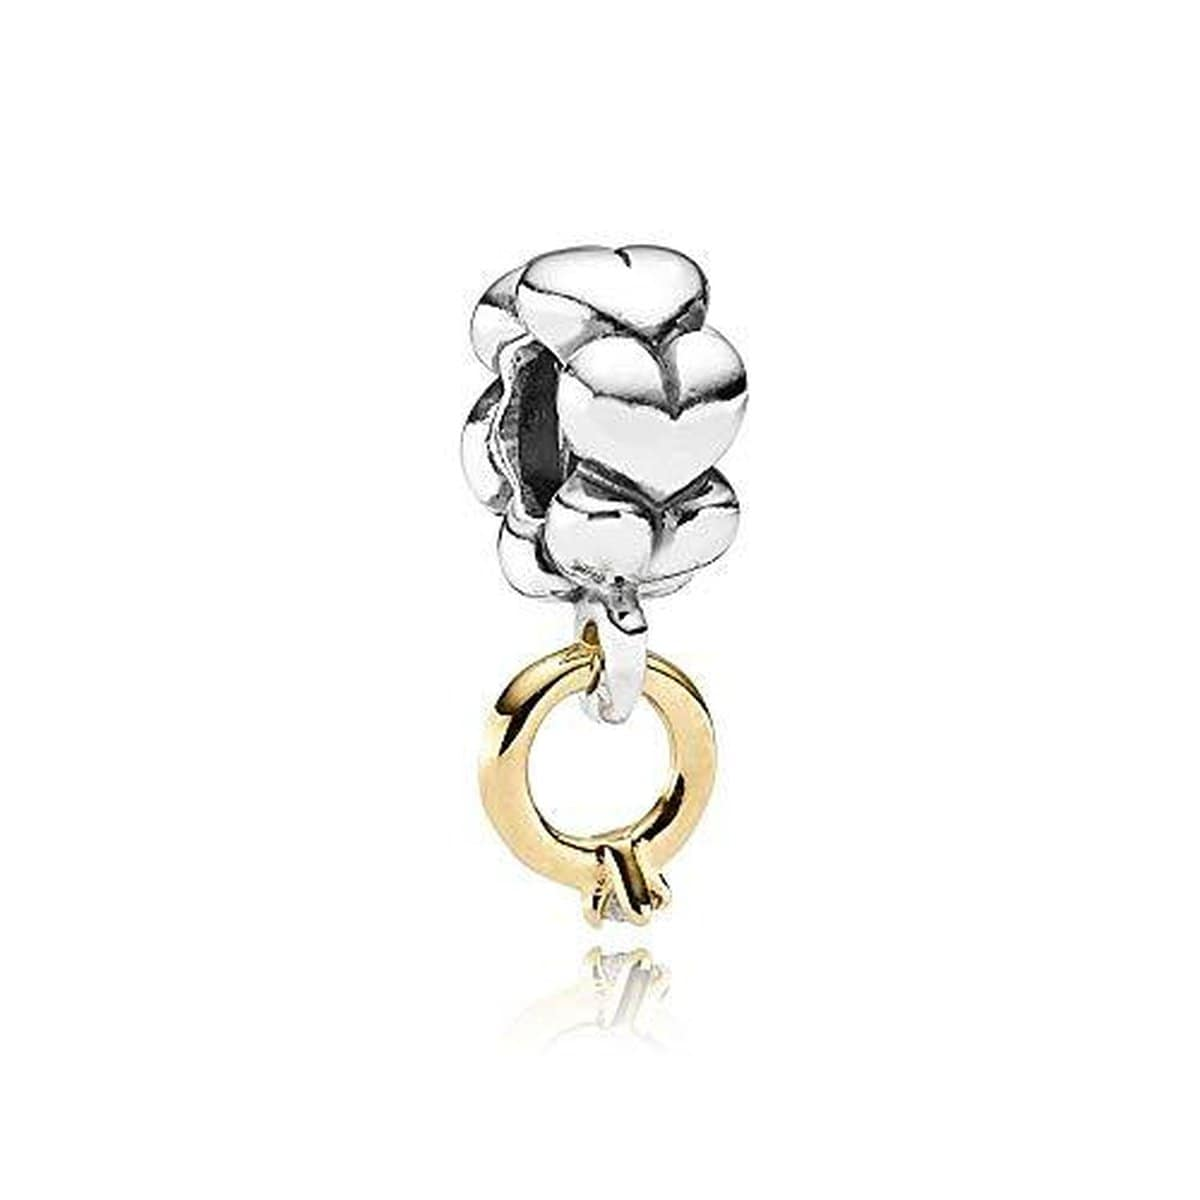 I Do 14K Gold & Silver Diamond Charm - 790999D-Pandora-Renee Taylor Gallery